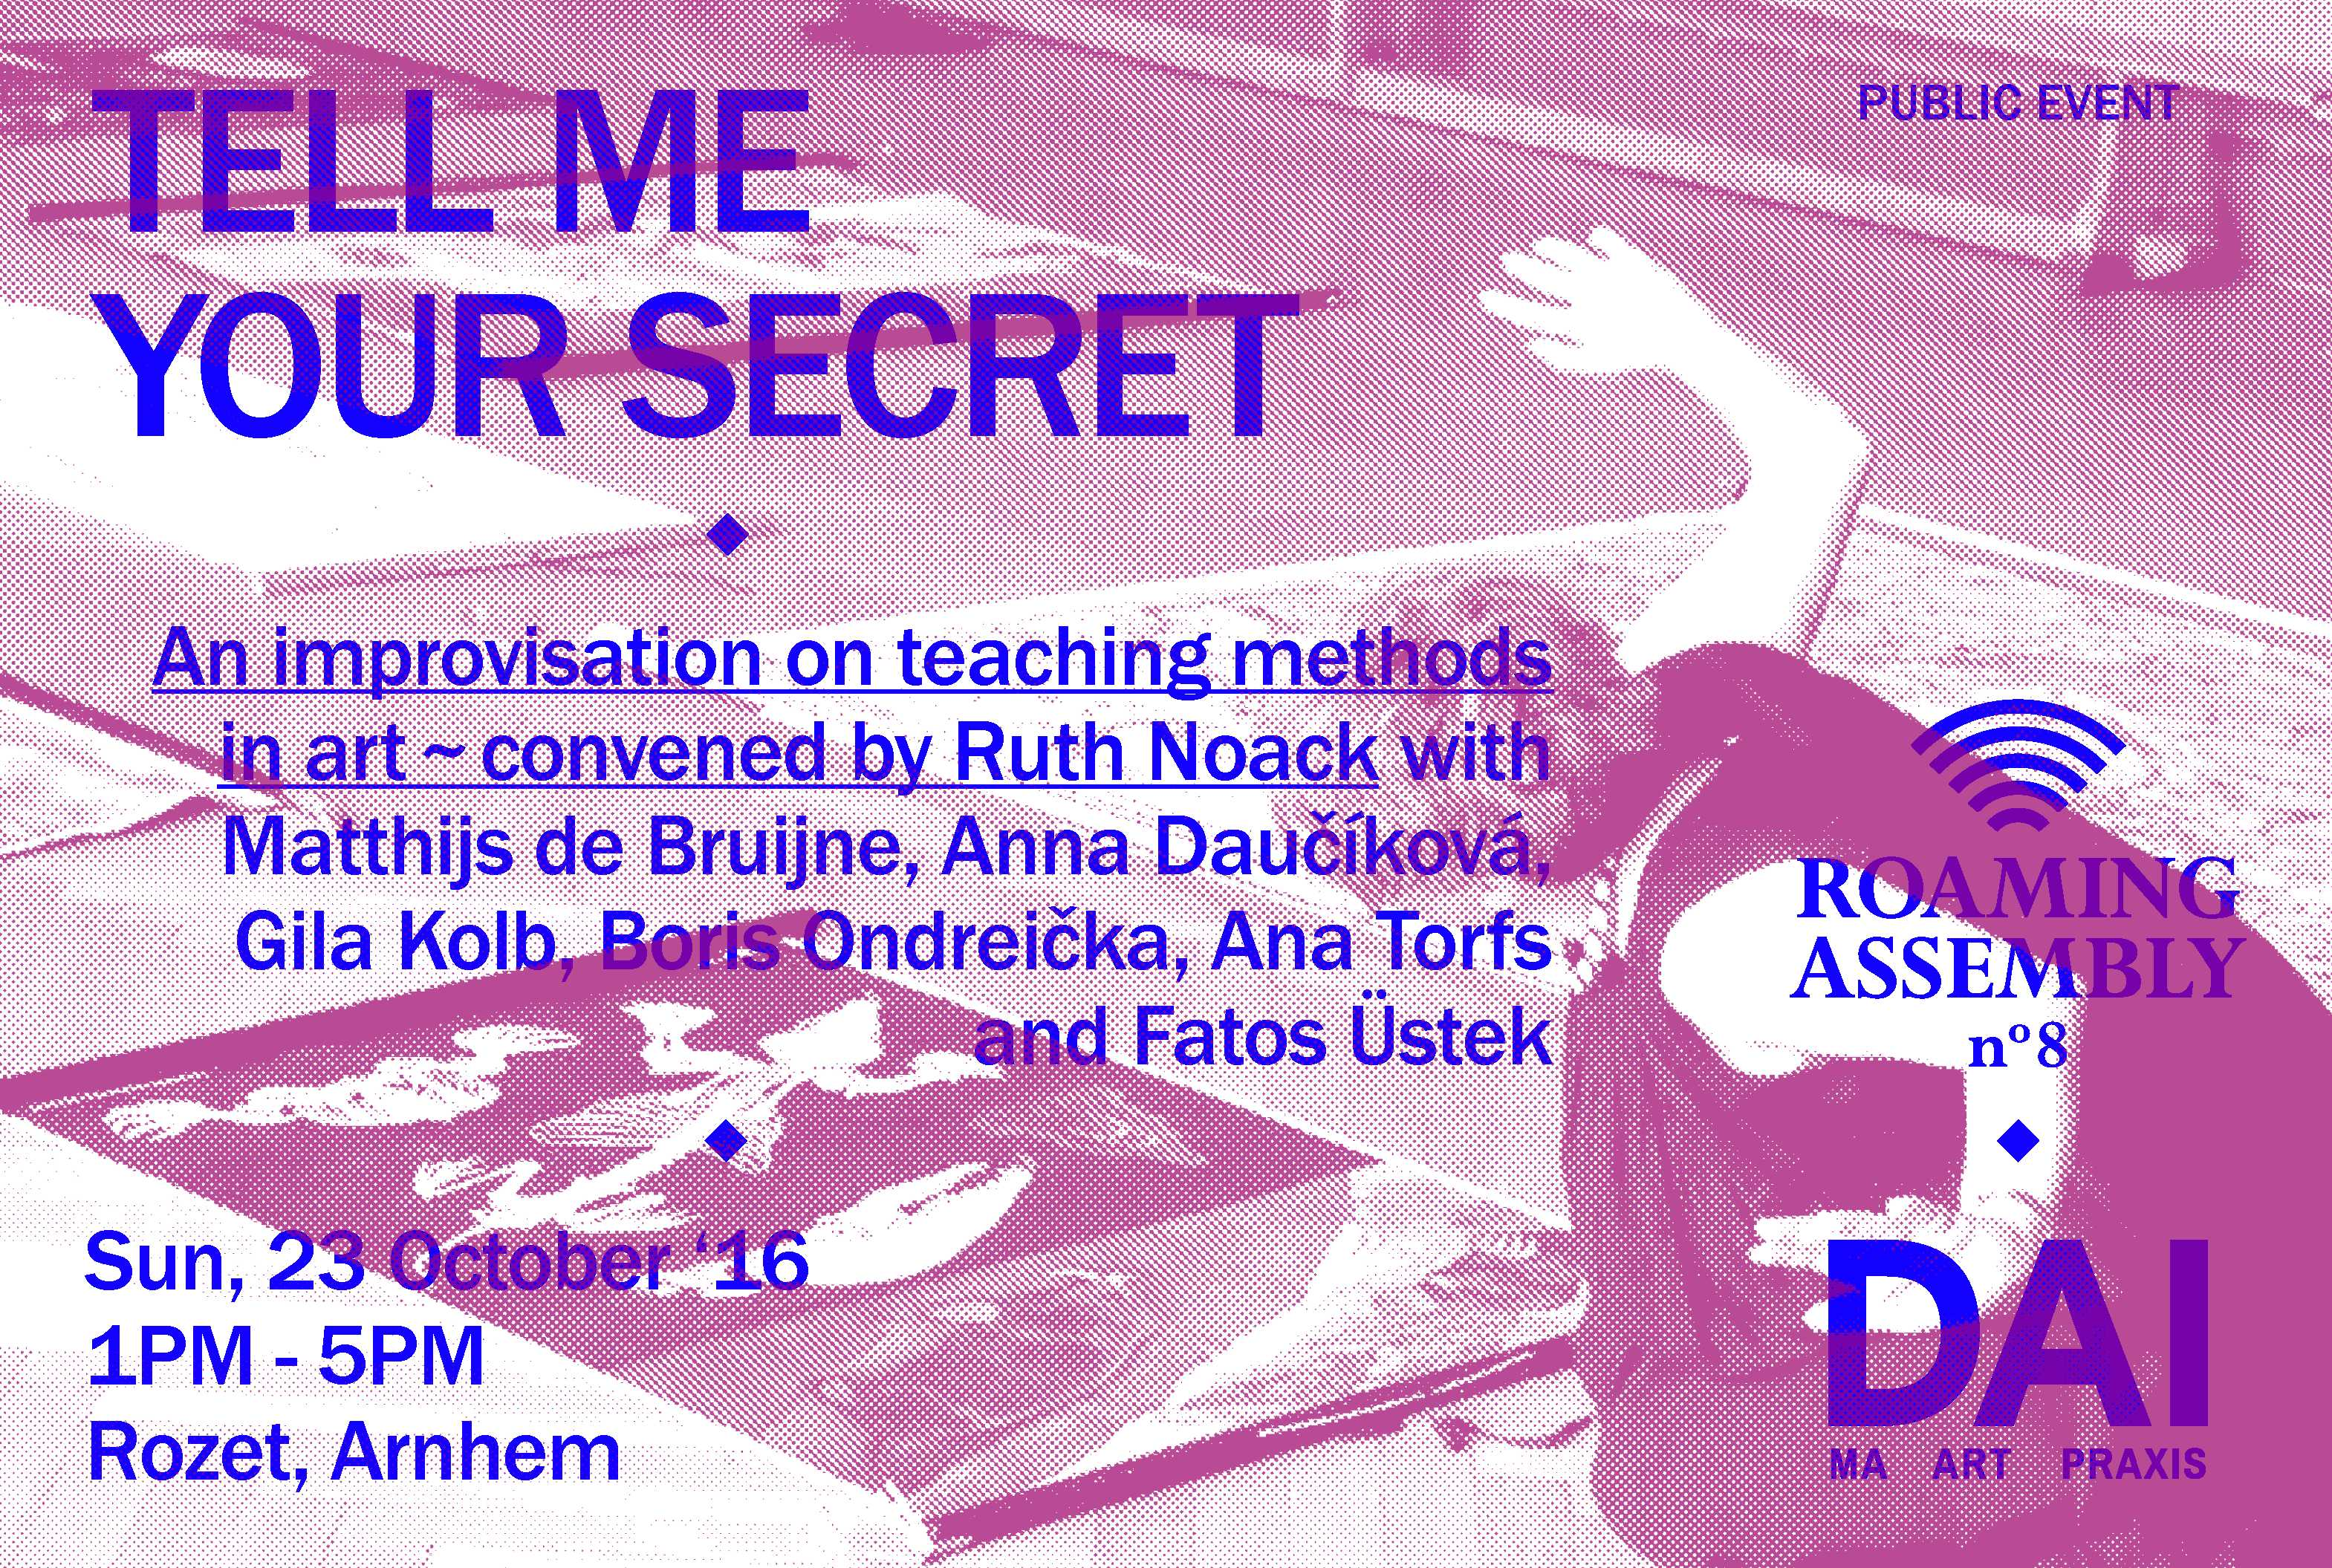 Tell me your secret - an improvisation on teaching methods in art. Image-credit: Monnier Ostermair